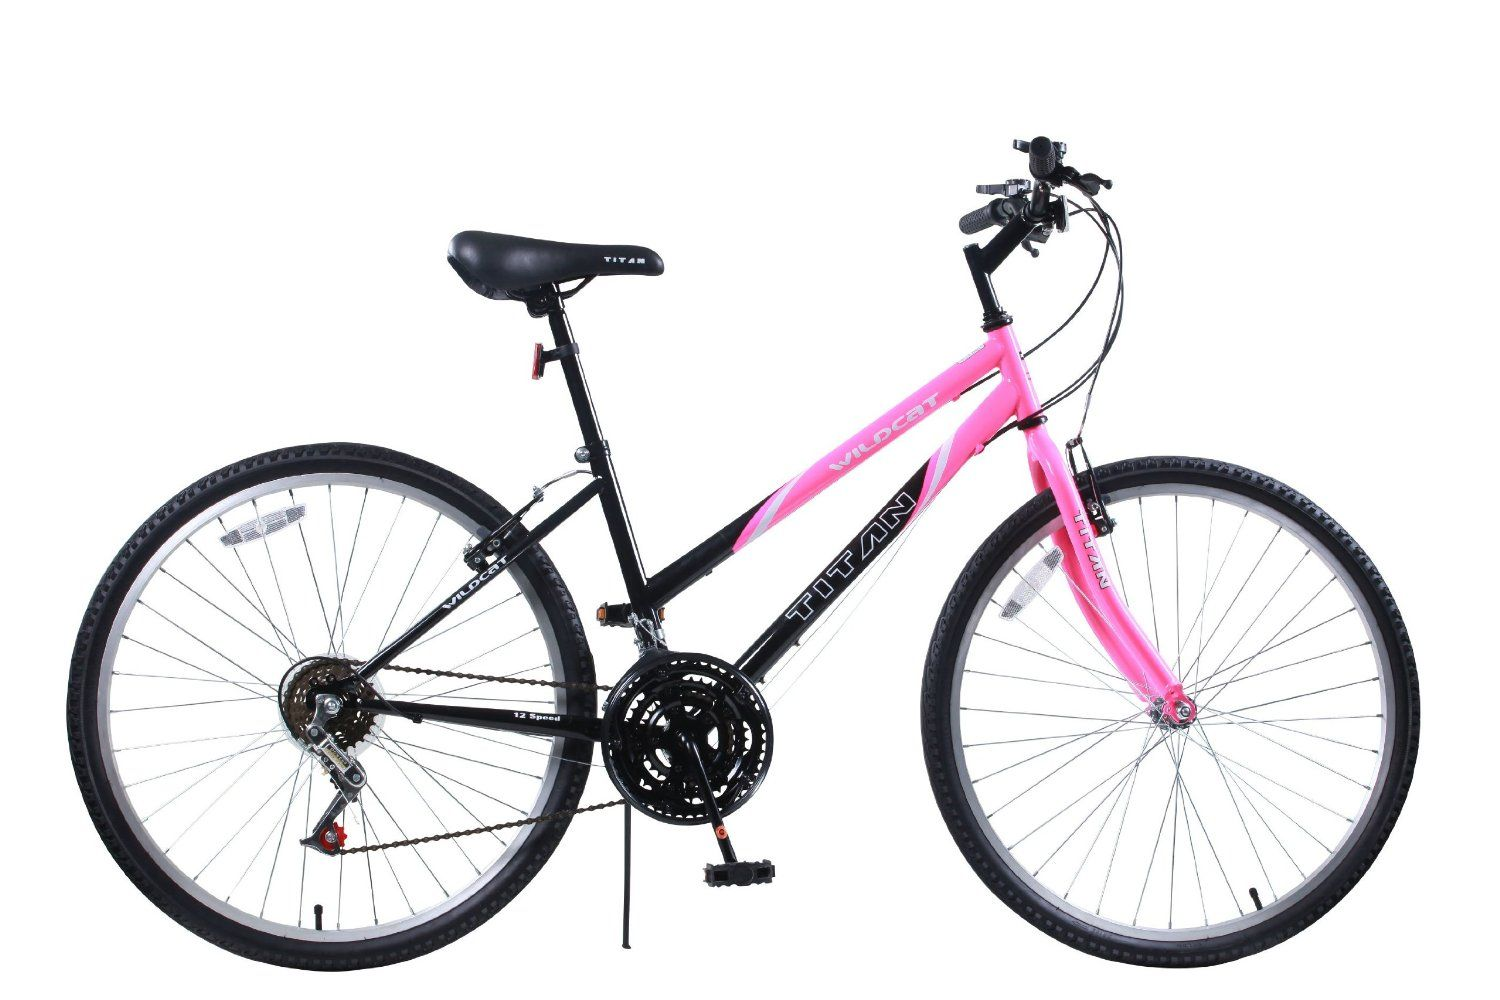 Titan Wildcat Women S Bike Is Tailored To Suit Girls Teens And